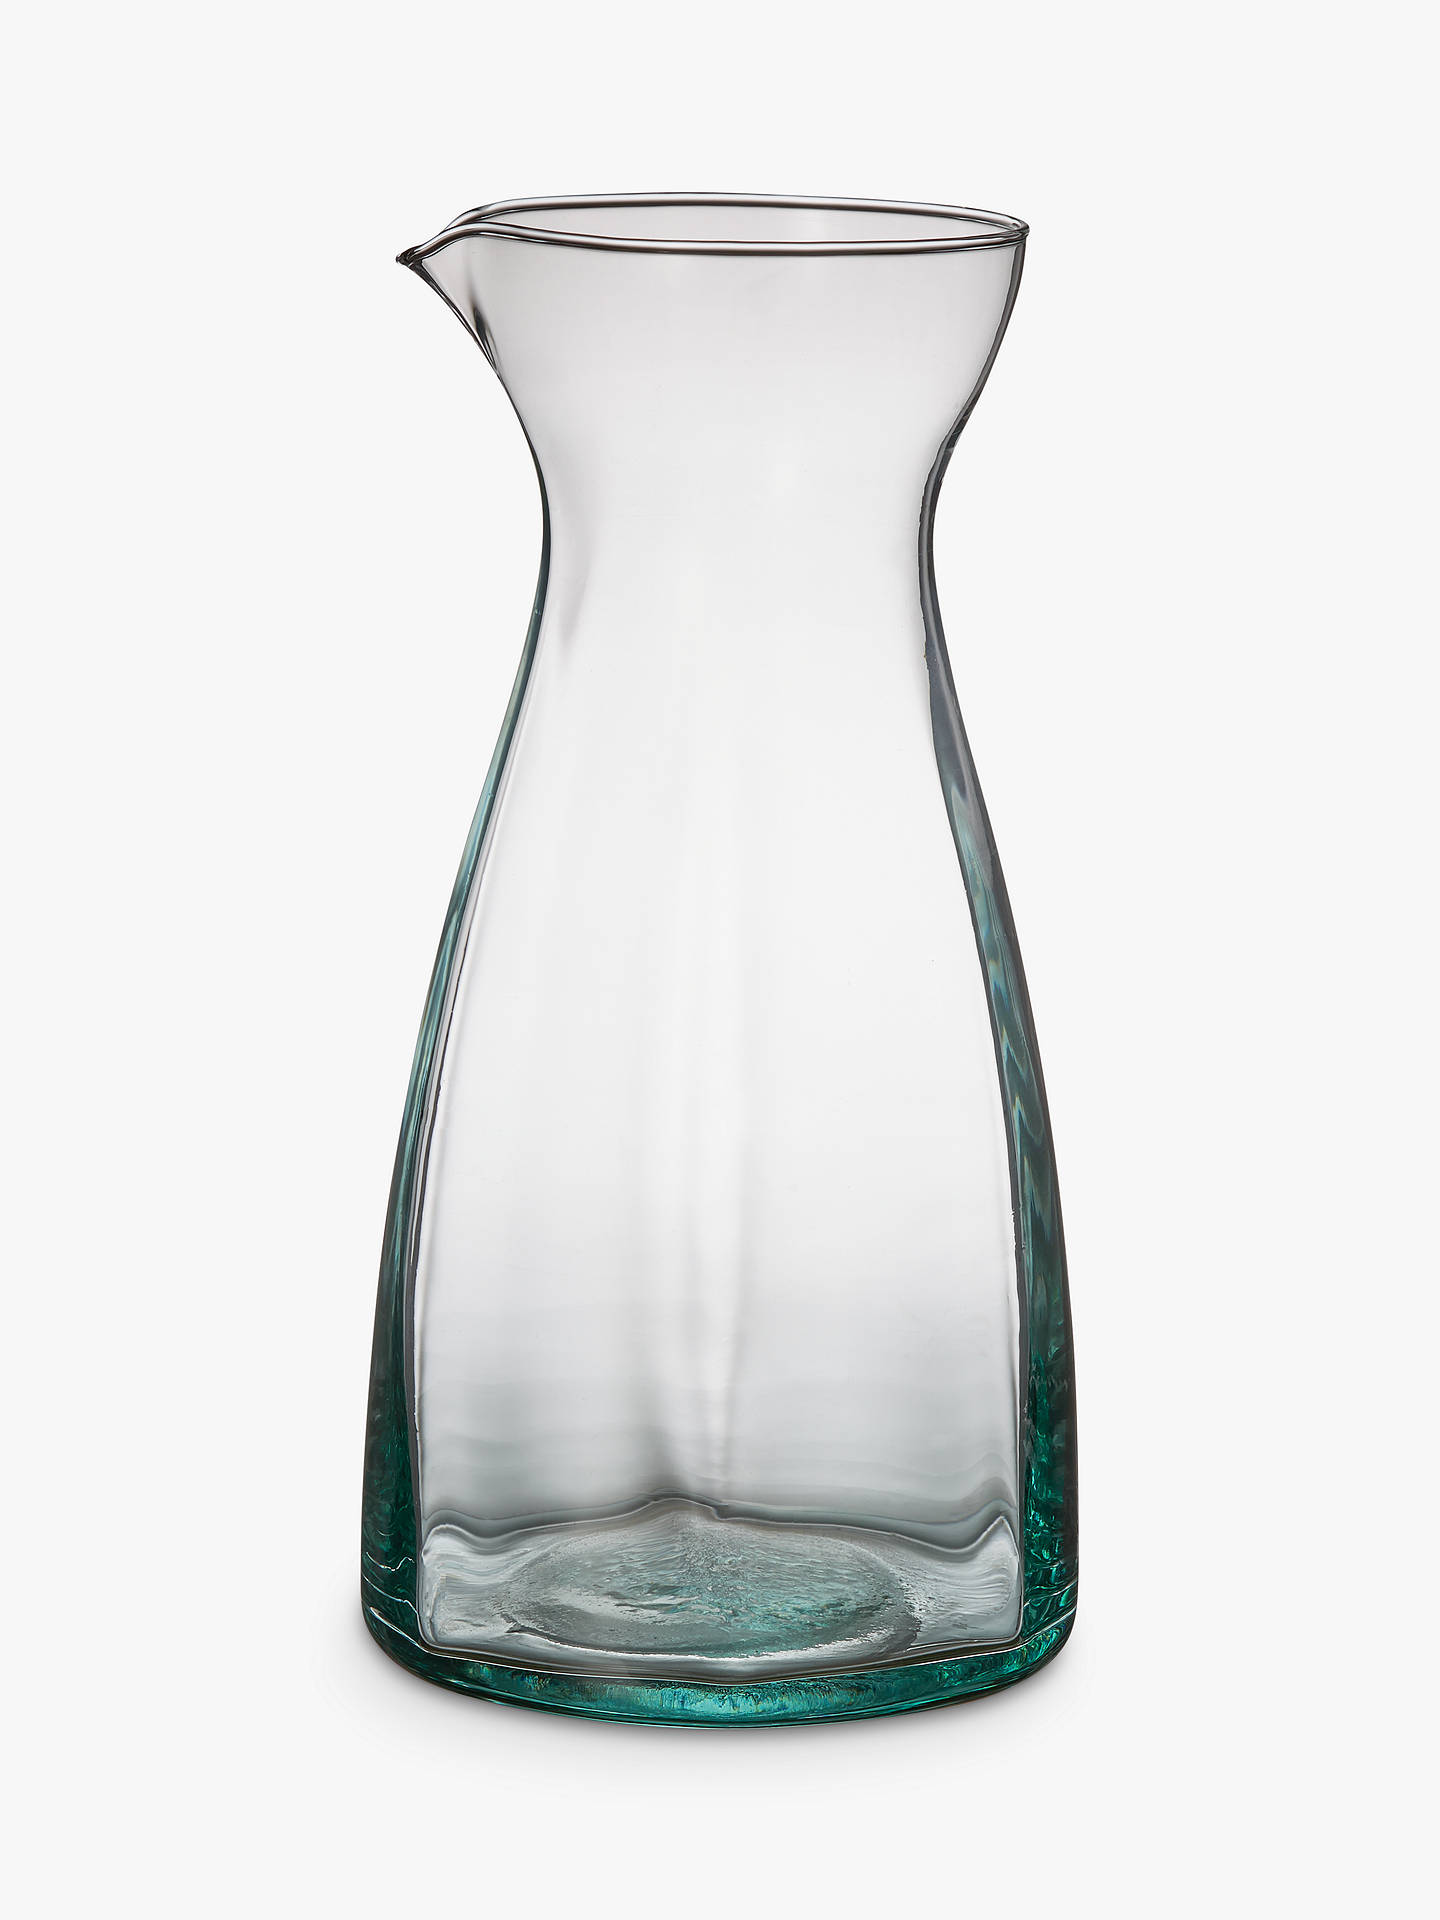 BuyLEON Recycled Glass Jug, Clear, 1.3L Online at johnlewis.com